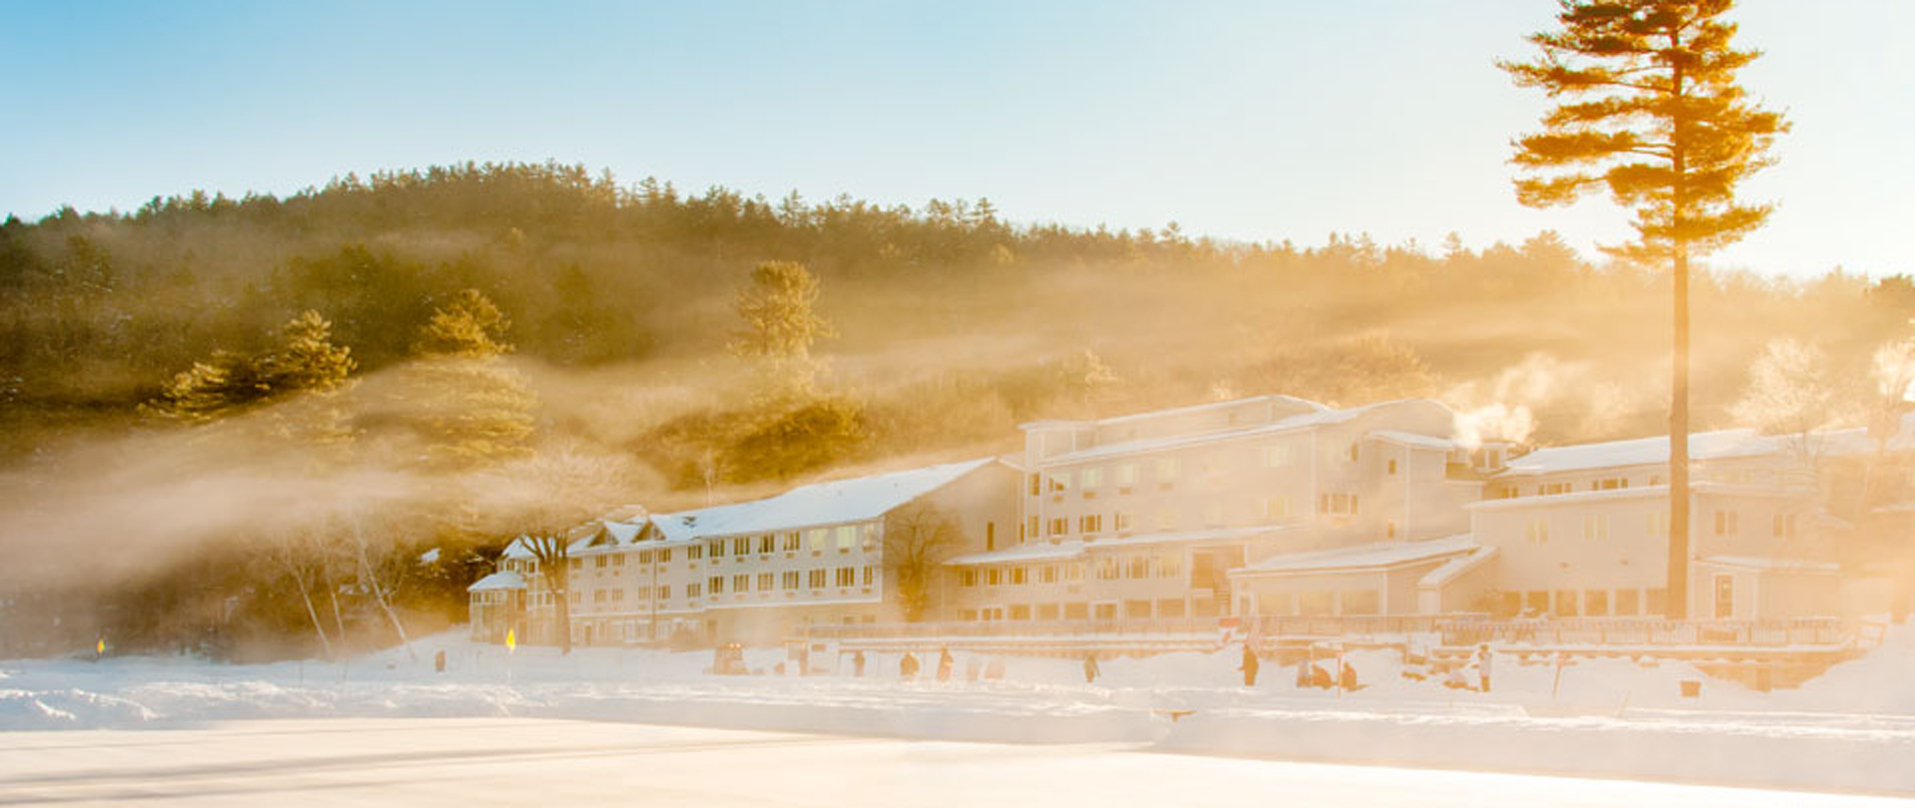 Lake Morey Resort building in the winter with morning fog and sunrise